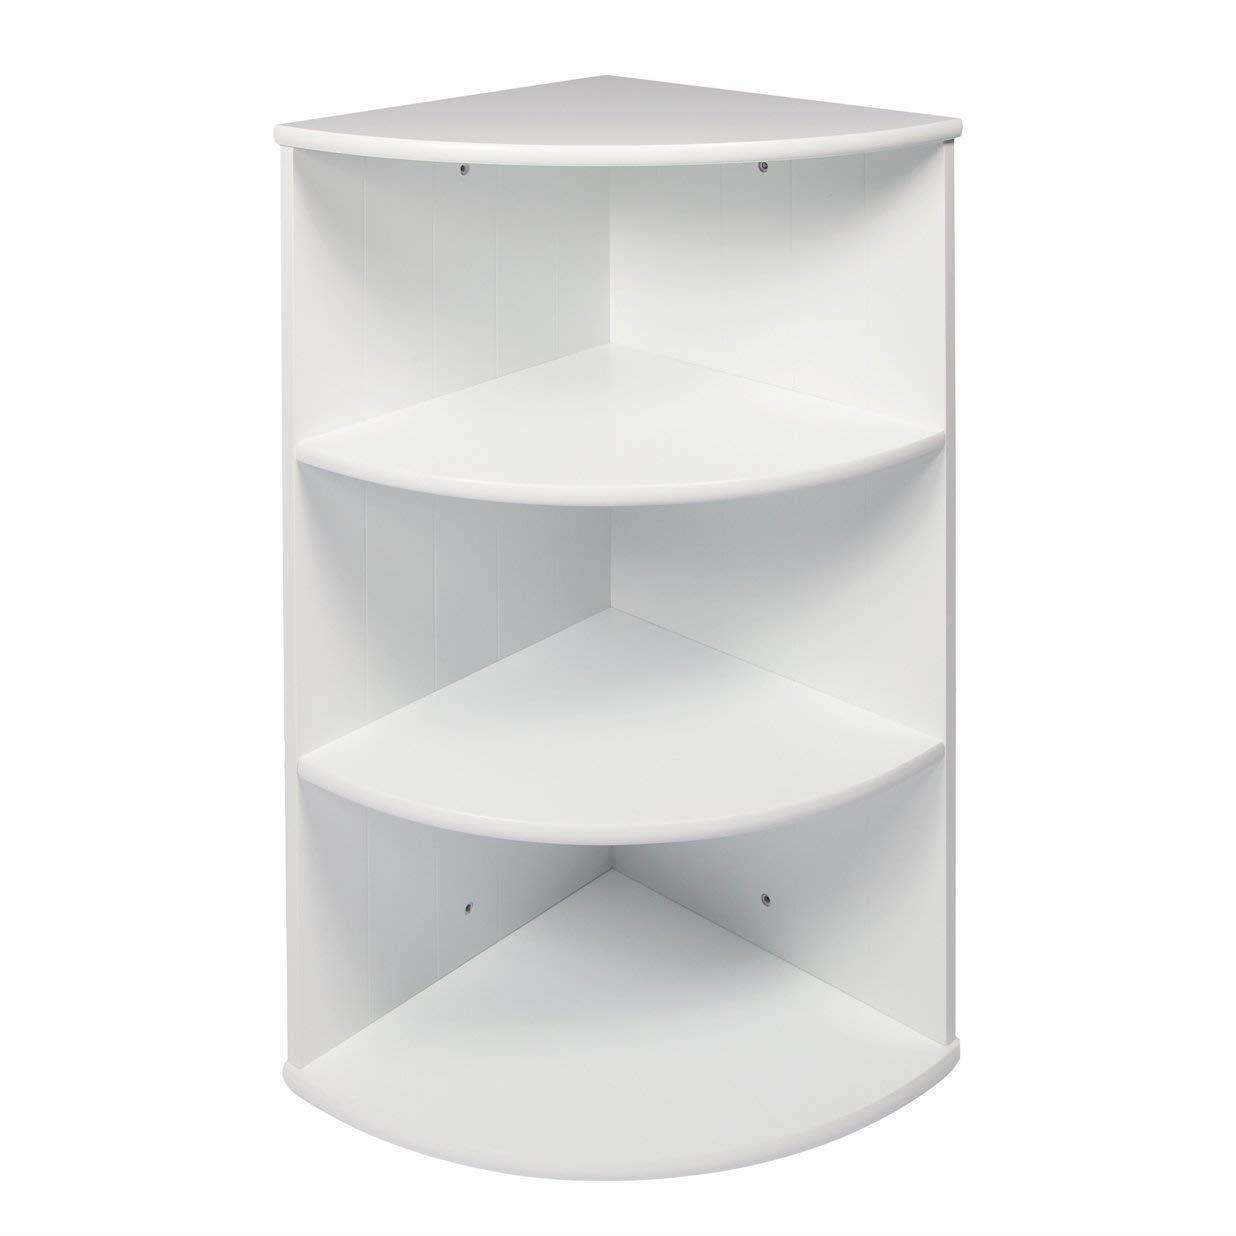 3 tier corner shelving unit white wooden shelves storage - White bathroom corner shelf unit ...